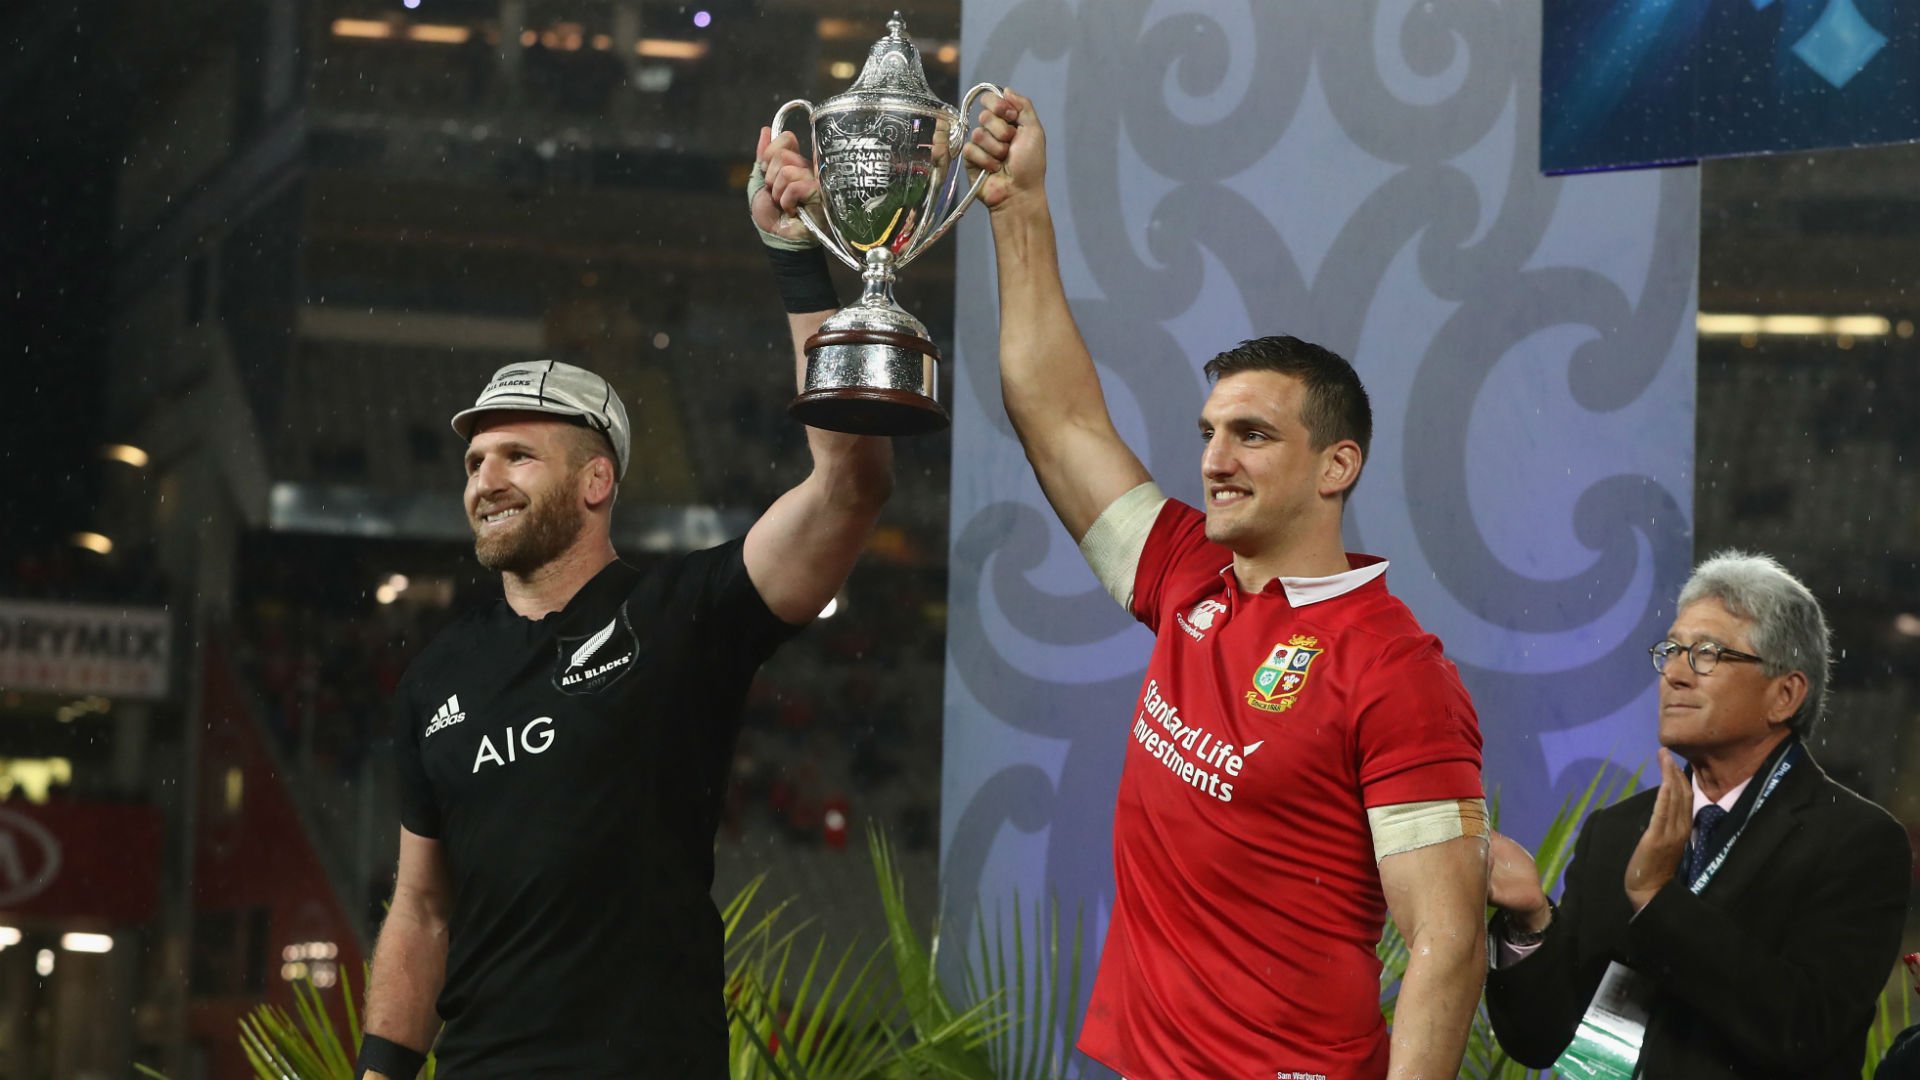 New Zealand are determined to beat England to make up for drawing with the British and Irish Lions, says Steve Hansen.